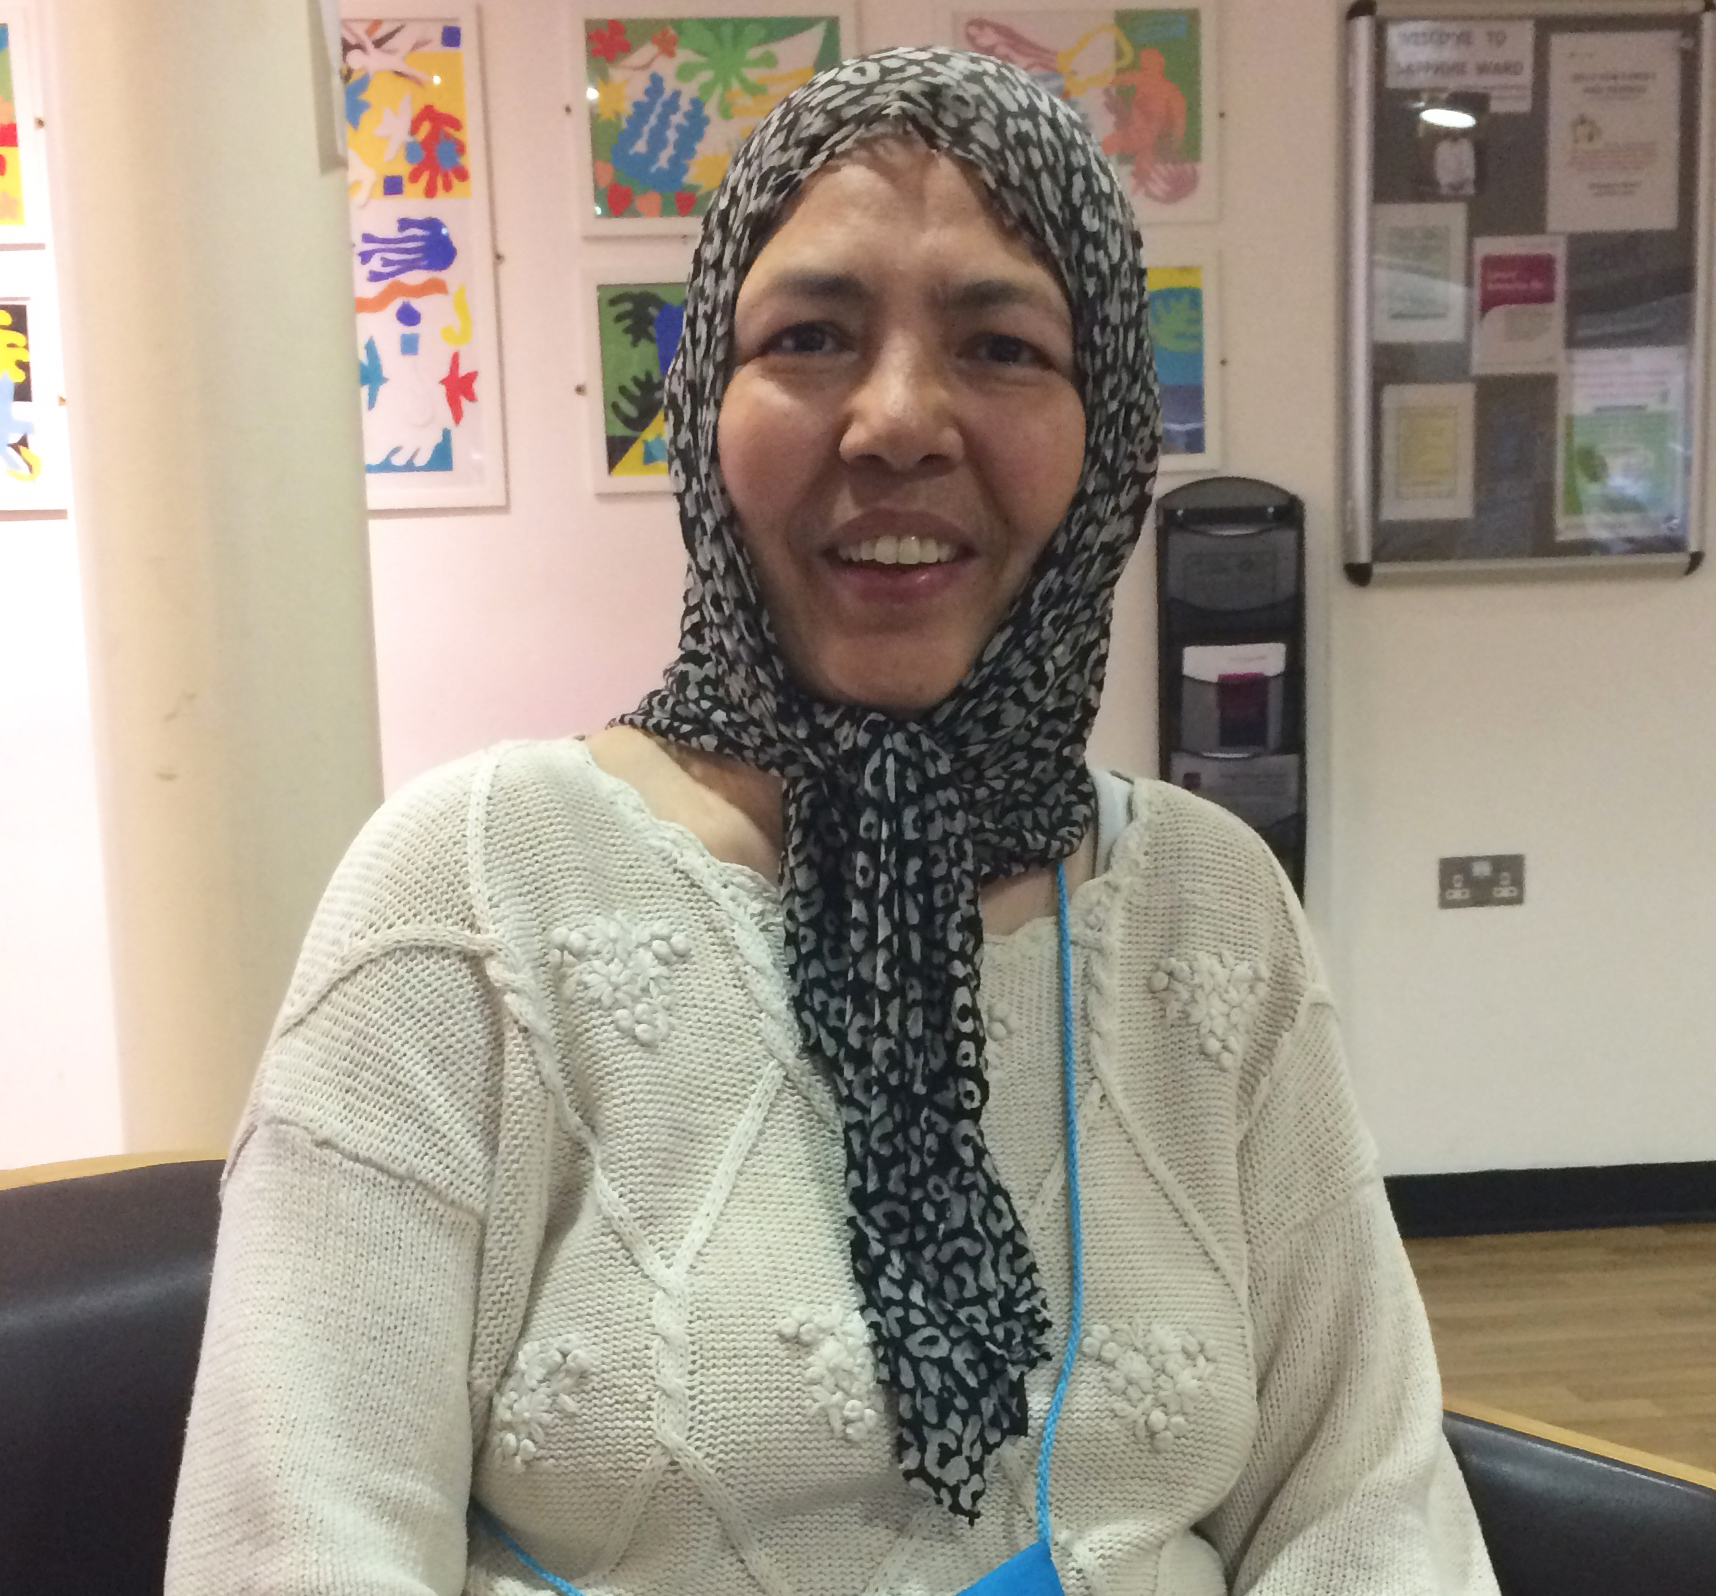 Nezhut Bano, Trolley Services Volunteer